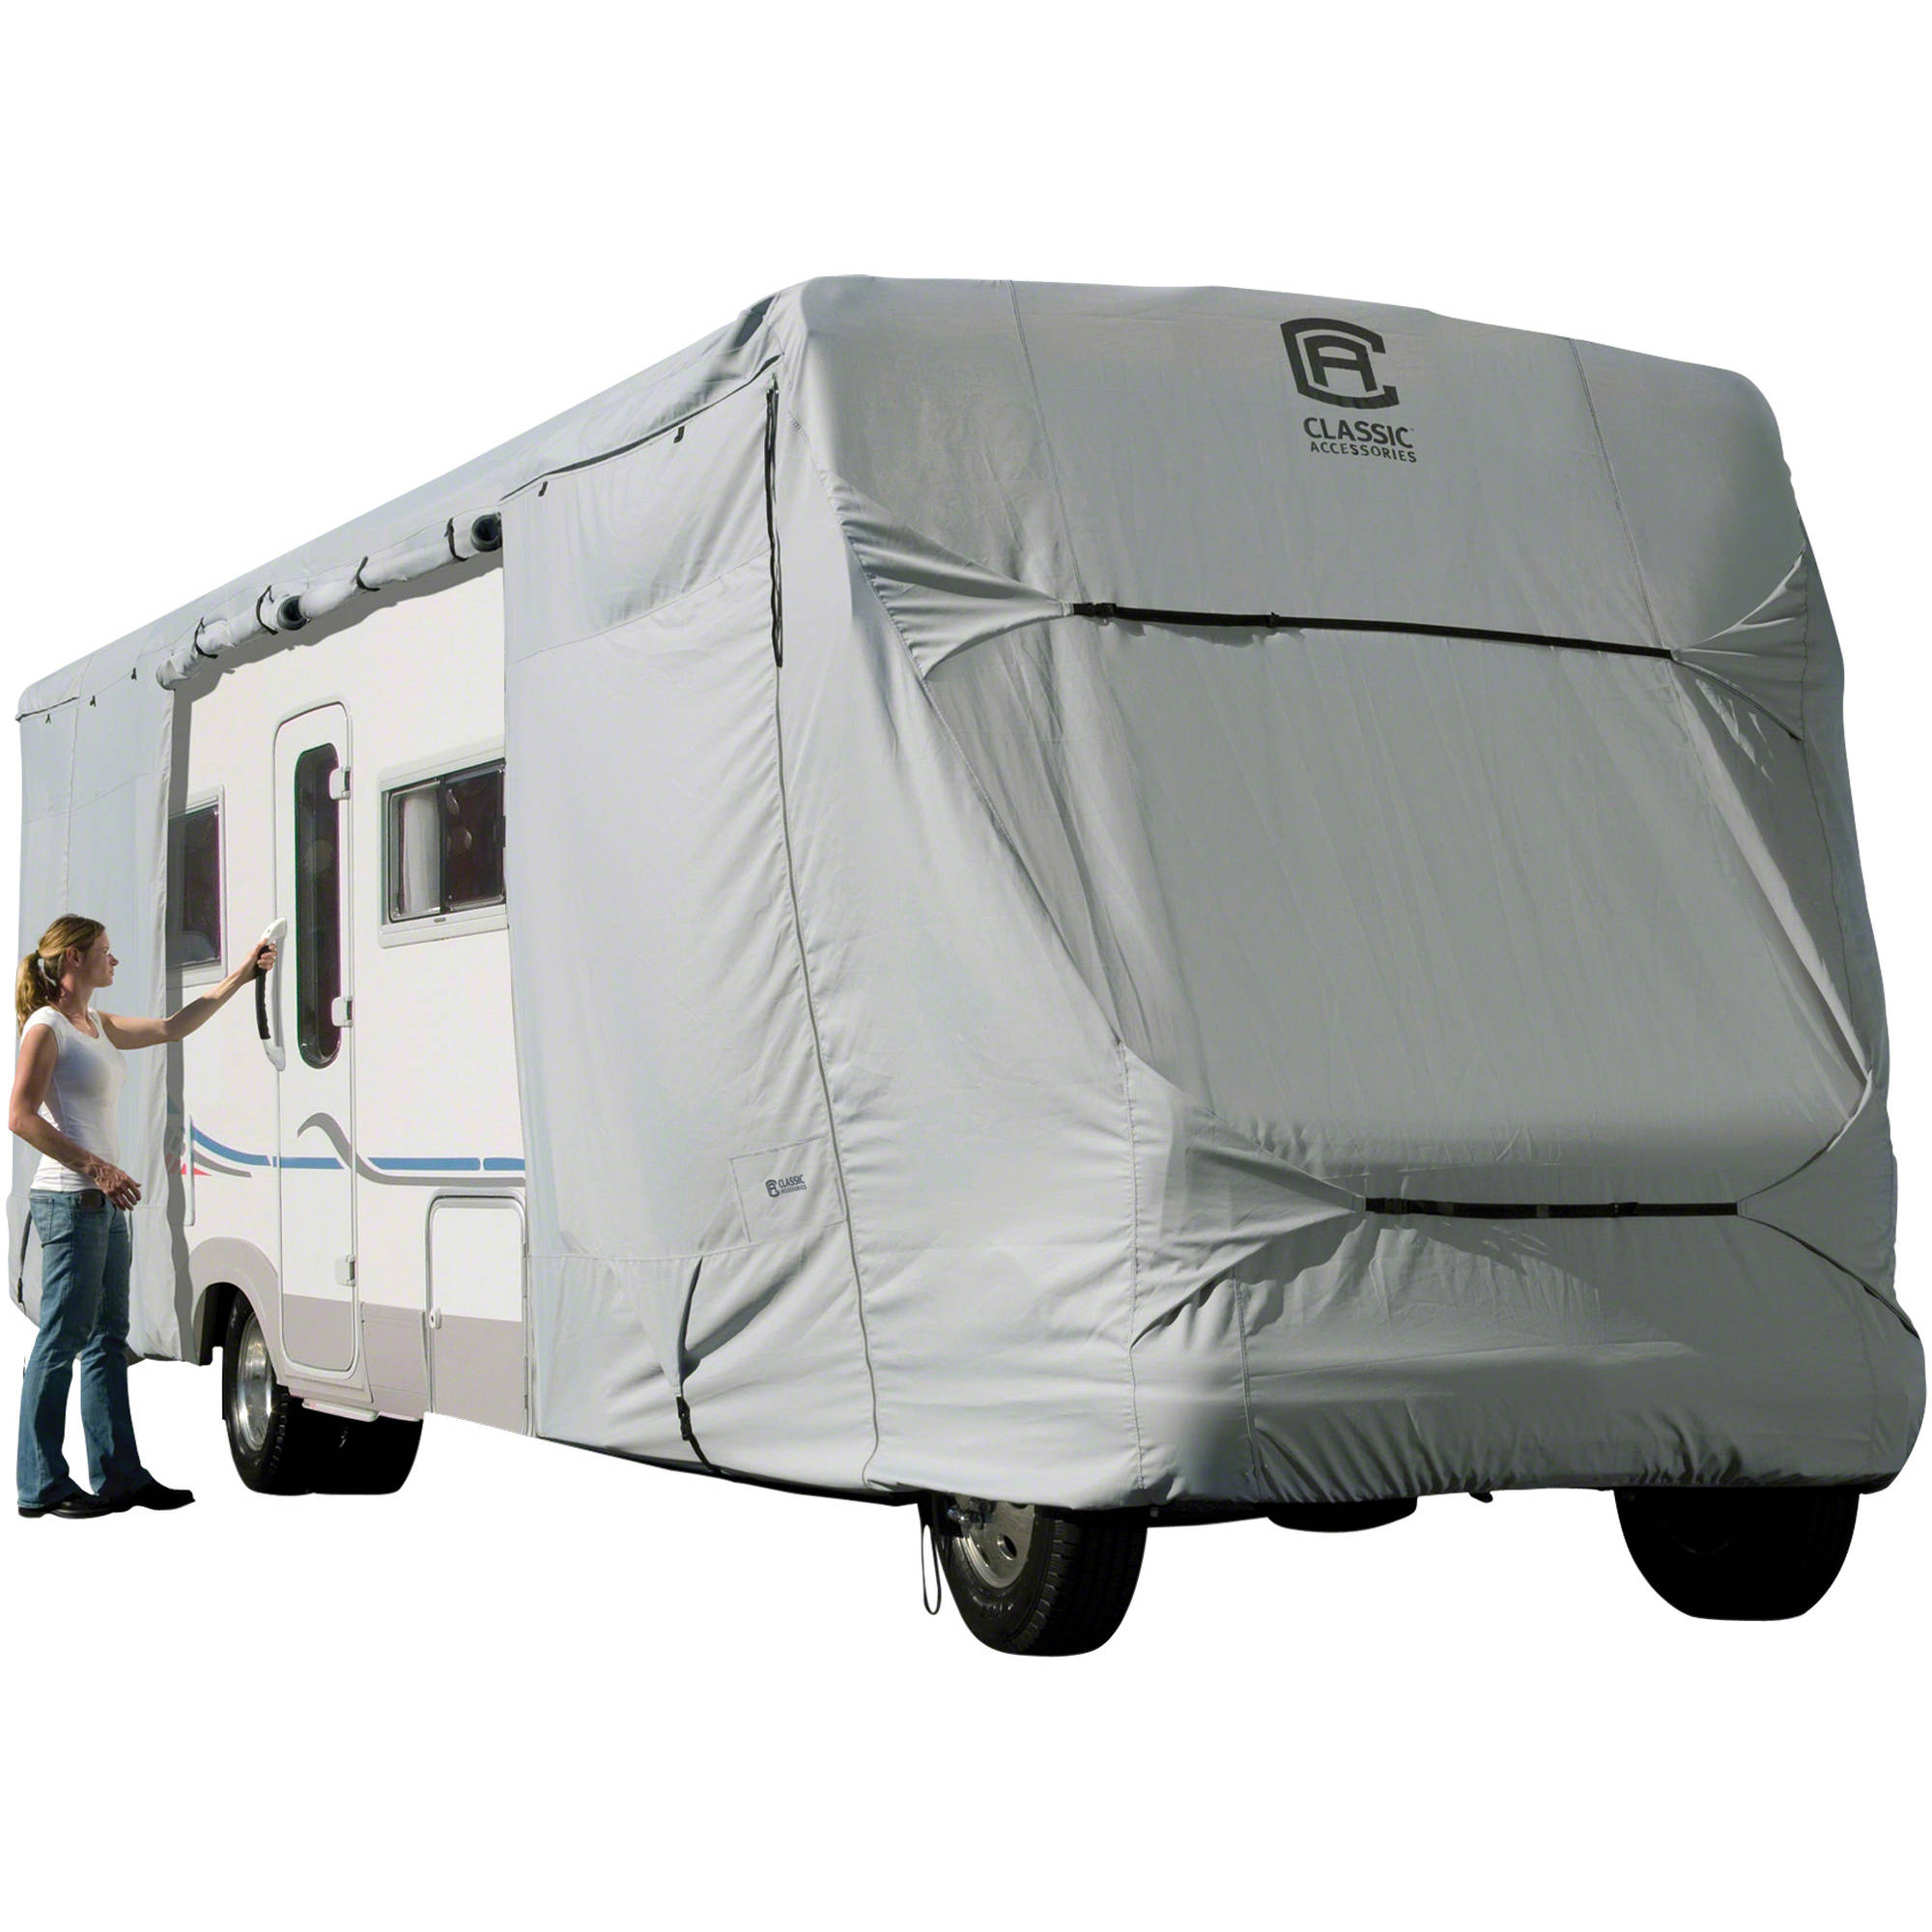 Classic Accessories OverDrive PermaPRO Deluxe Class C RV Cover, Fits 20' - 38' RVs - Lightweight Ripstop and Water Repellent RV Cover